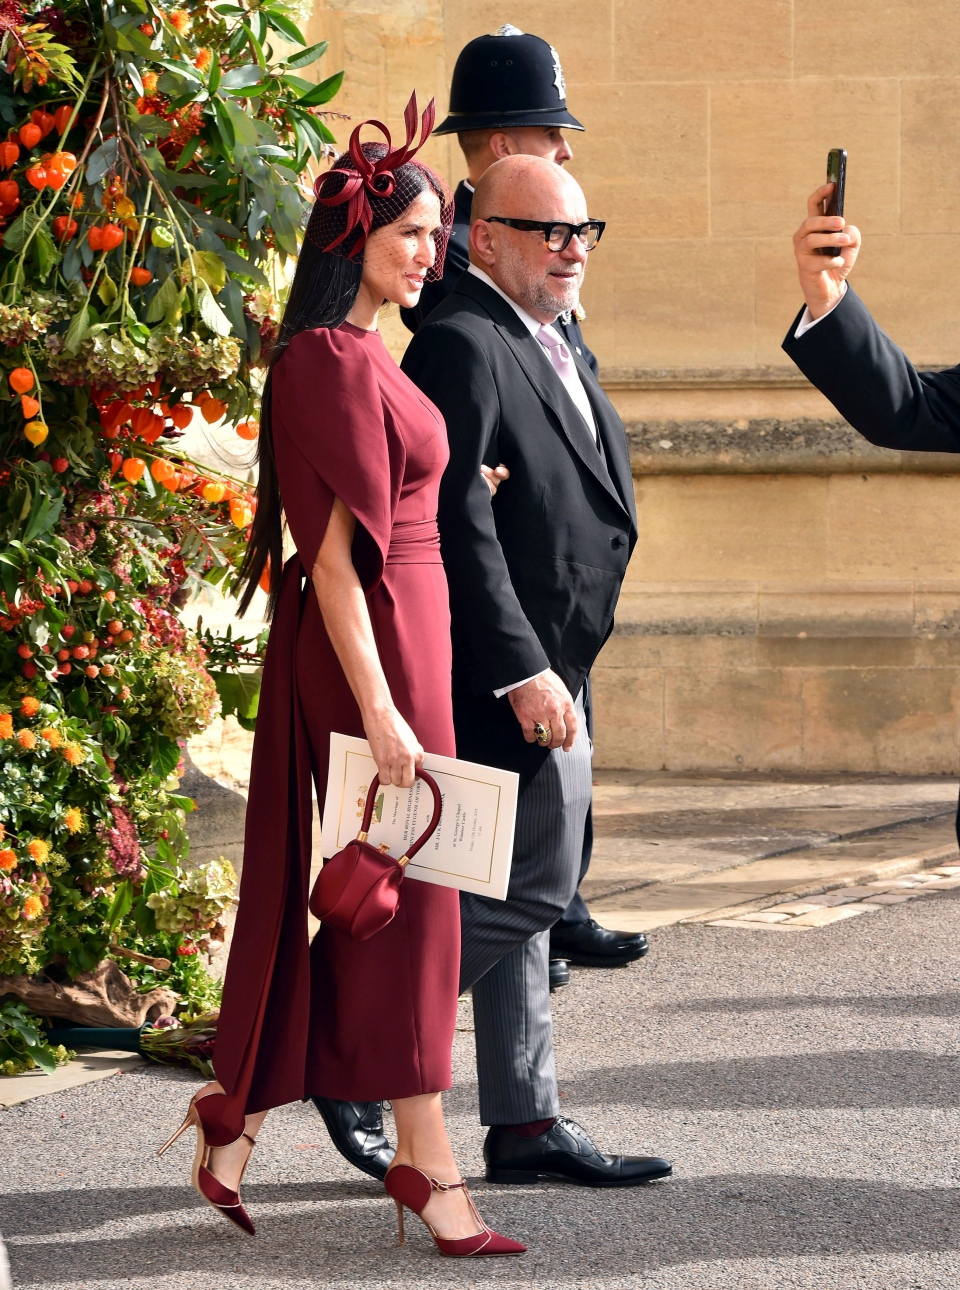 Actress Demi Moore, left, and Eric Buterbaugh depart after the wedding of Princess Eugenie of York and Jack Brooksbank at St George's Chapel, Windsor Castle, near London, England, Friday Oct. 12, 2018. (Matt Crossick, Pool via AP)